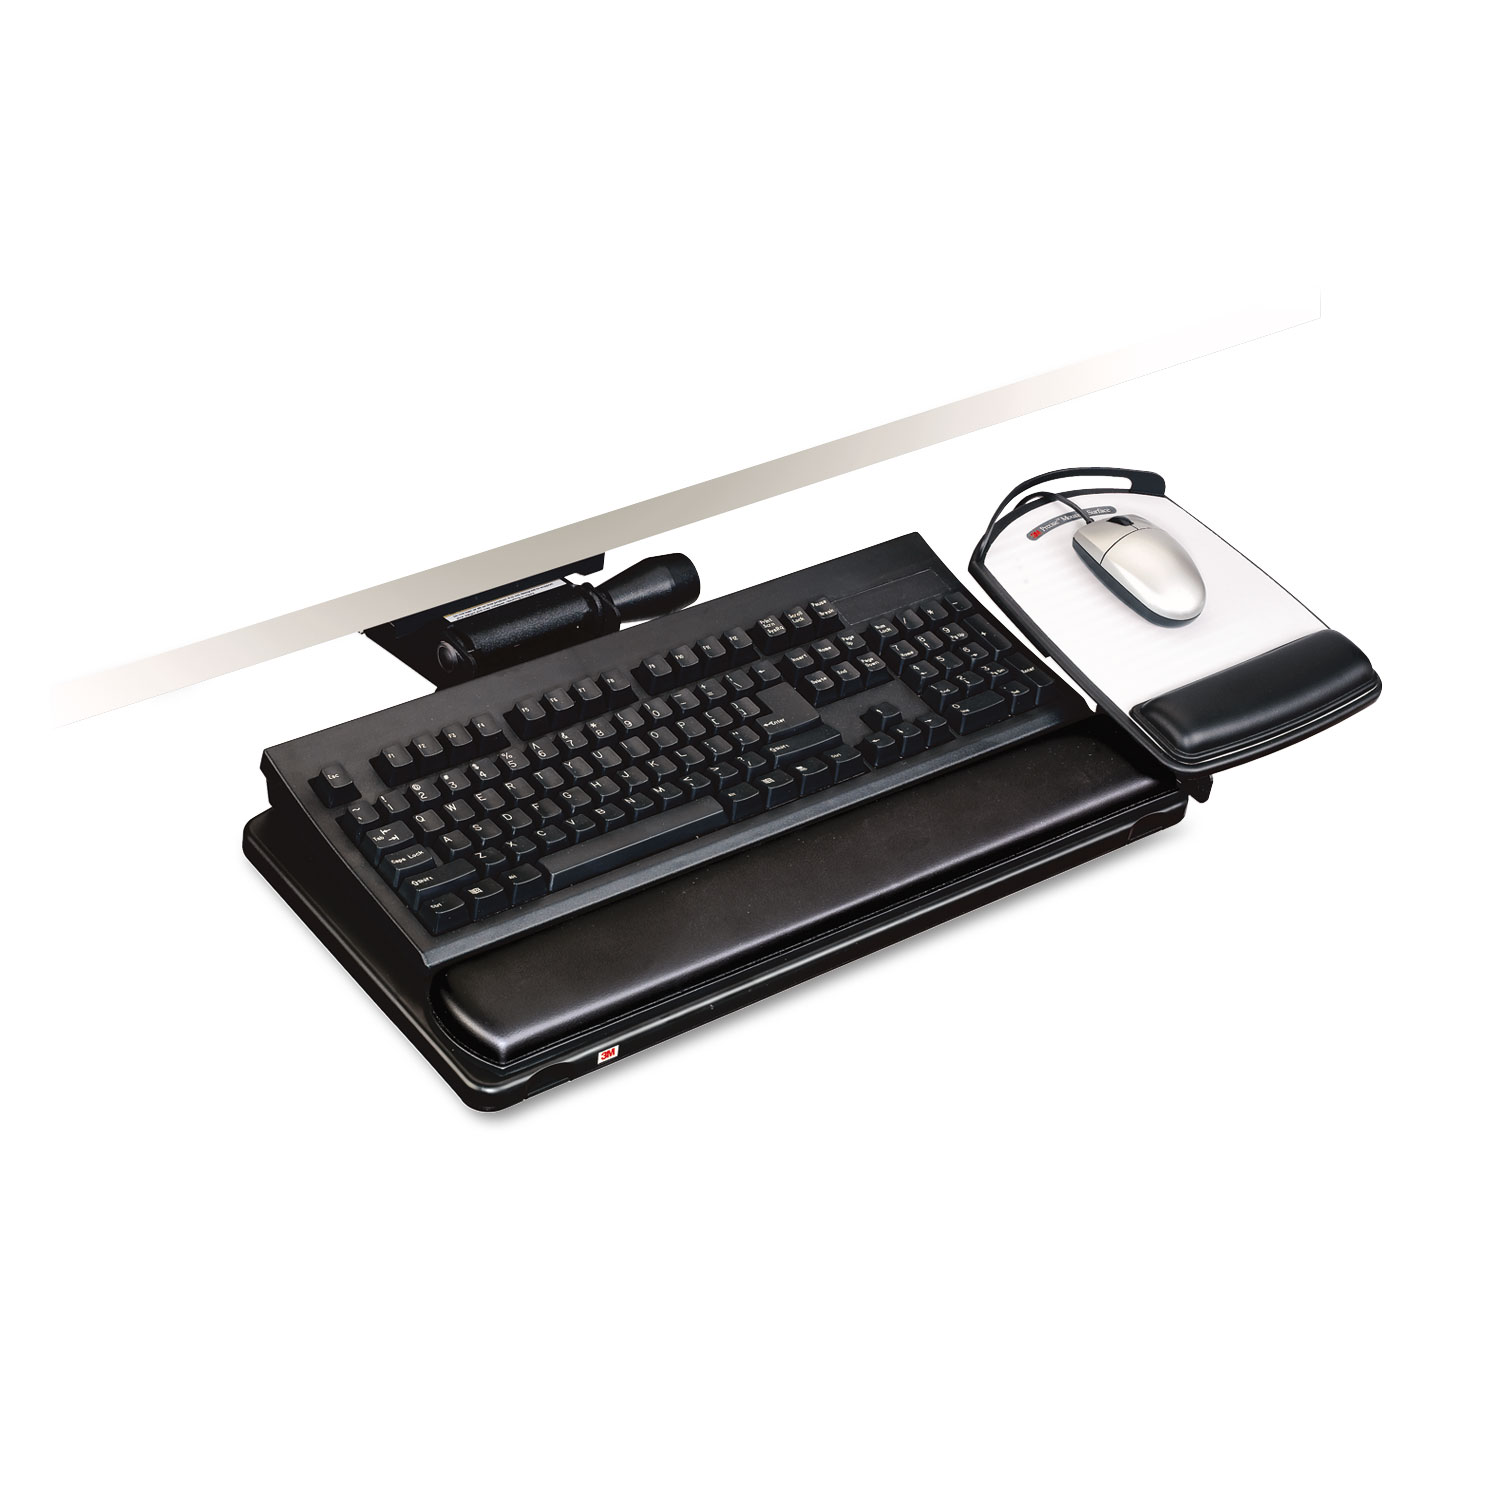 3m Mmmakt150le Easy Adjust Keyboard Tray Highly Adjustable Platform 23